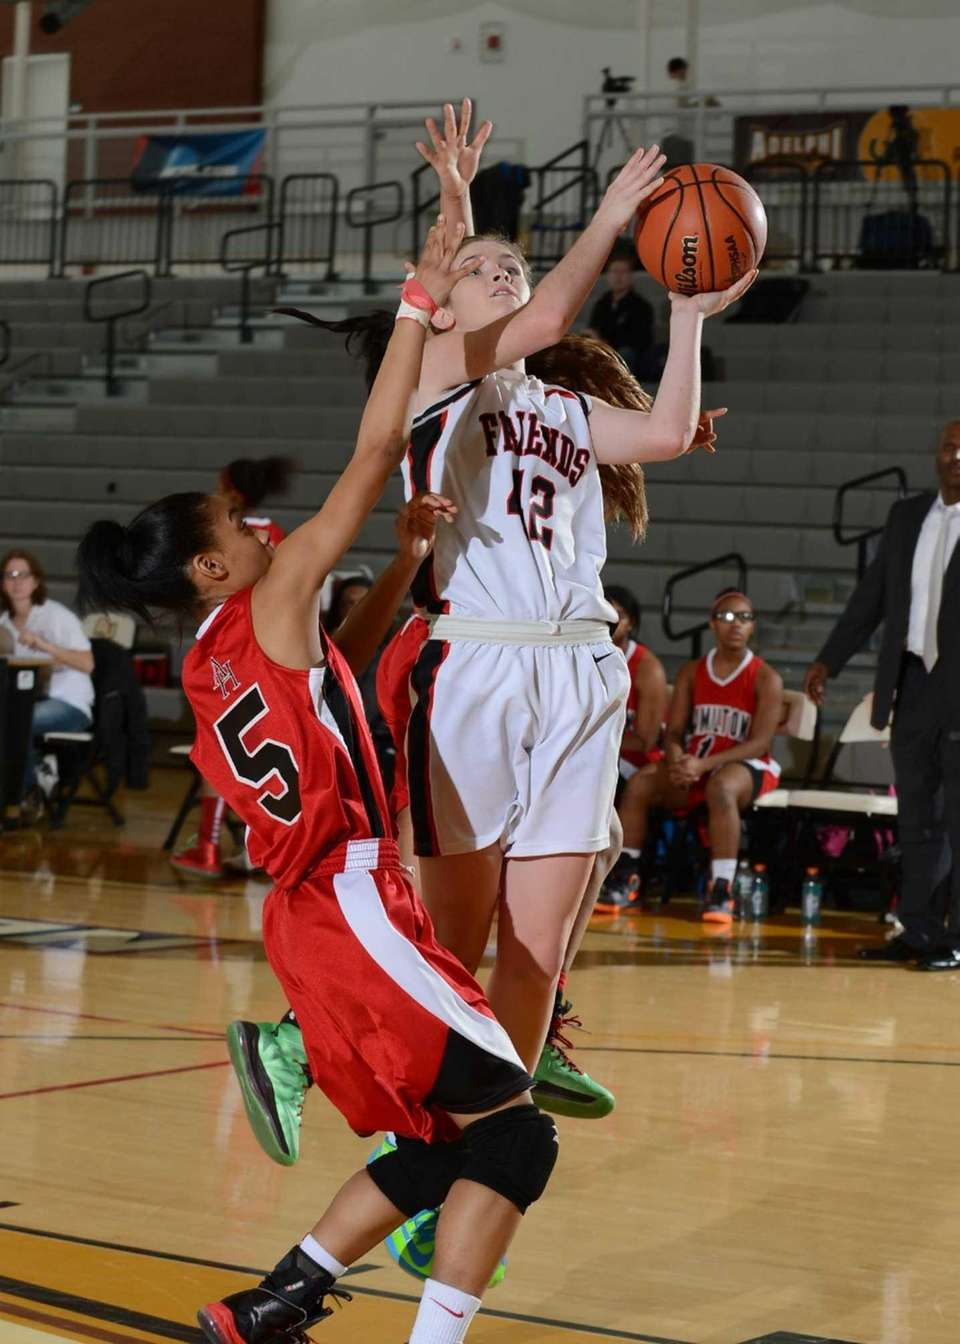 Friend's Rose Mangiarotti goes up for the layup